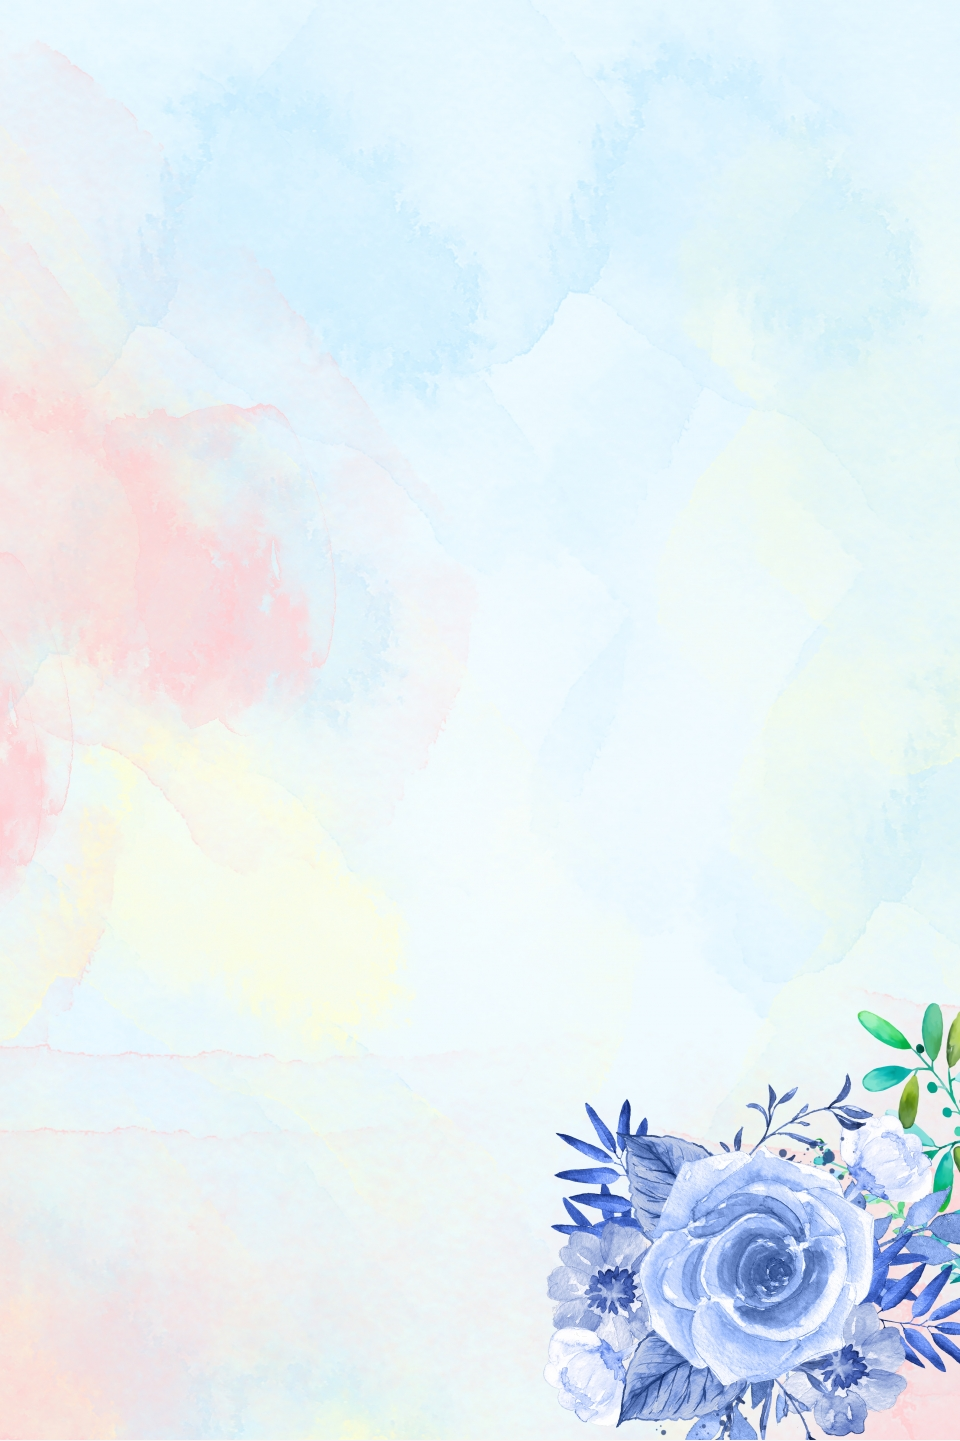 Hand Painted Floral Watercolor Light Fresh Minimalist Background